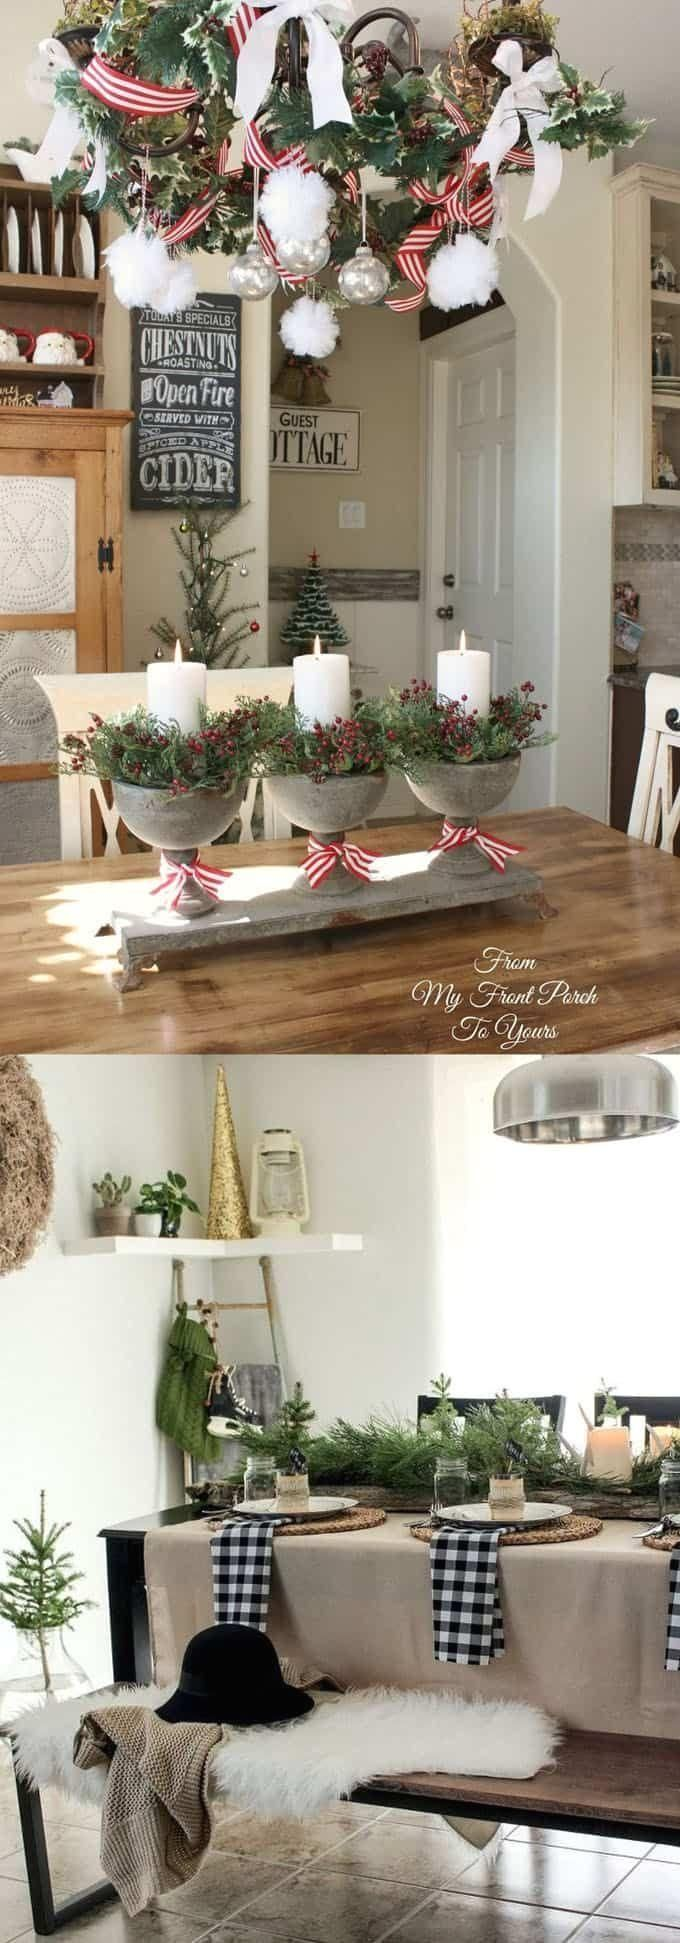 100 Favorite Christmas Decorating Ideas For Every Room in Your Home  Part 2  General More and more young Garden beginners discover their own vegetable garden as a Basis f...